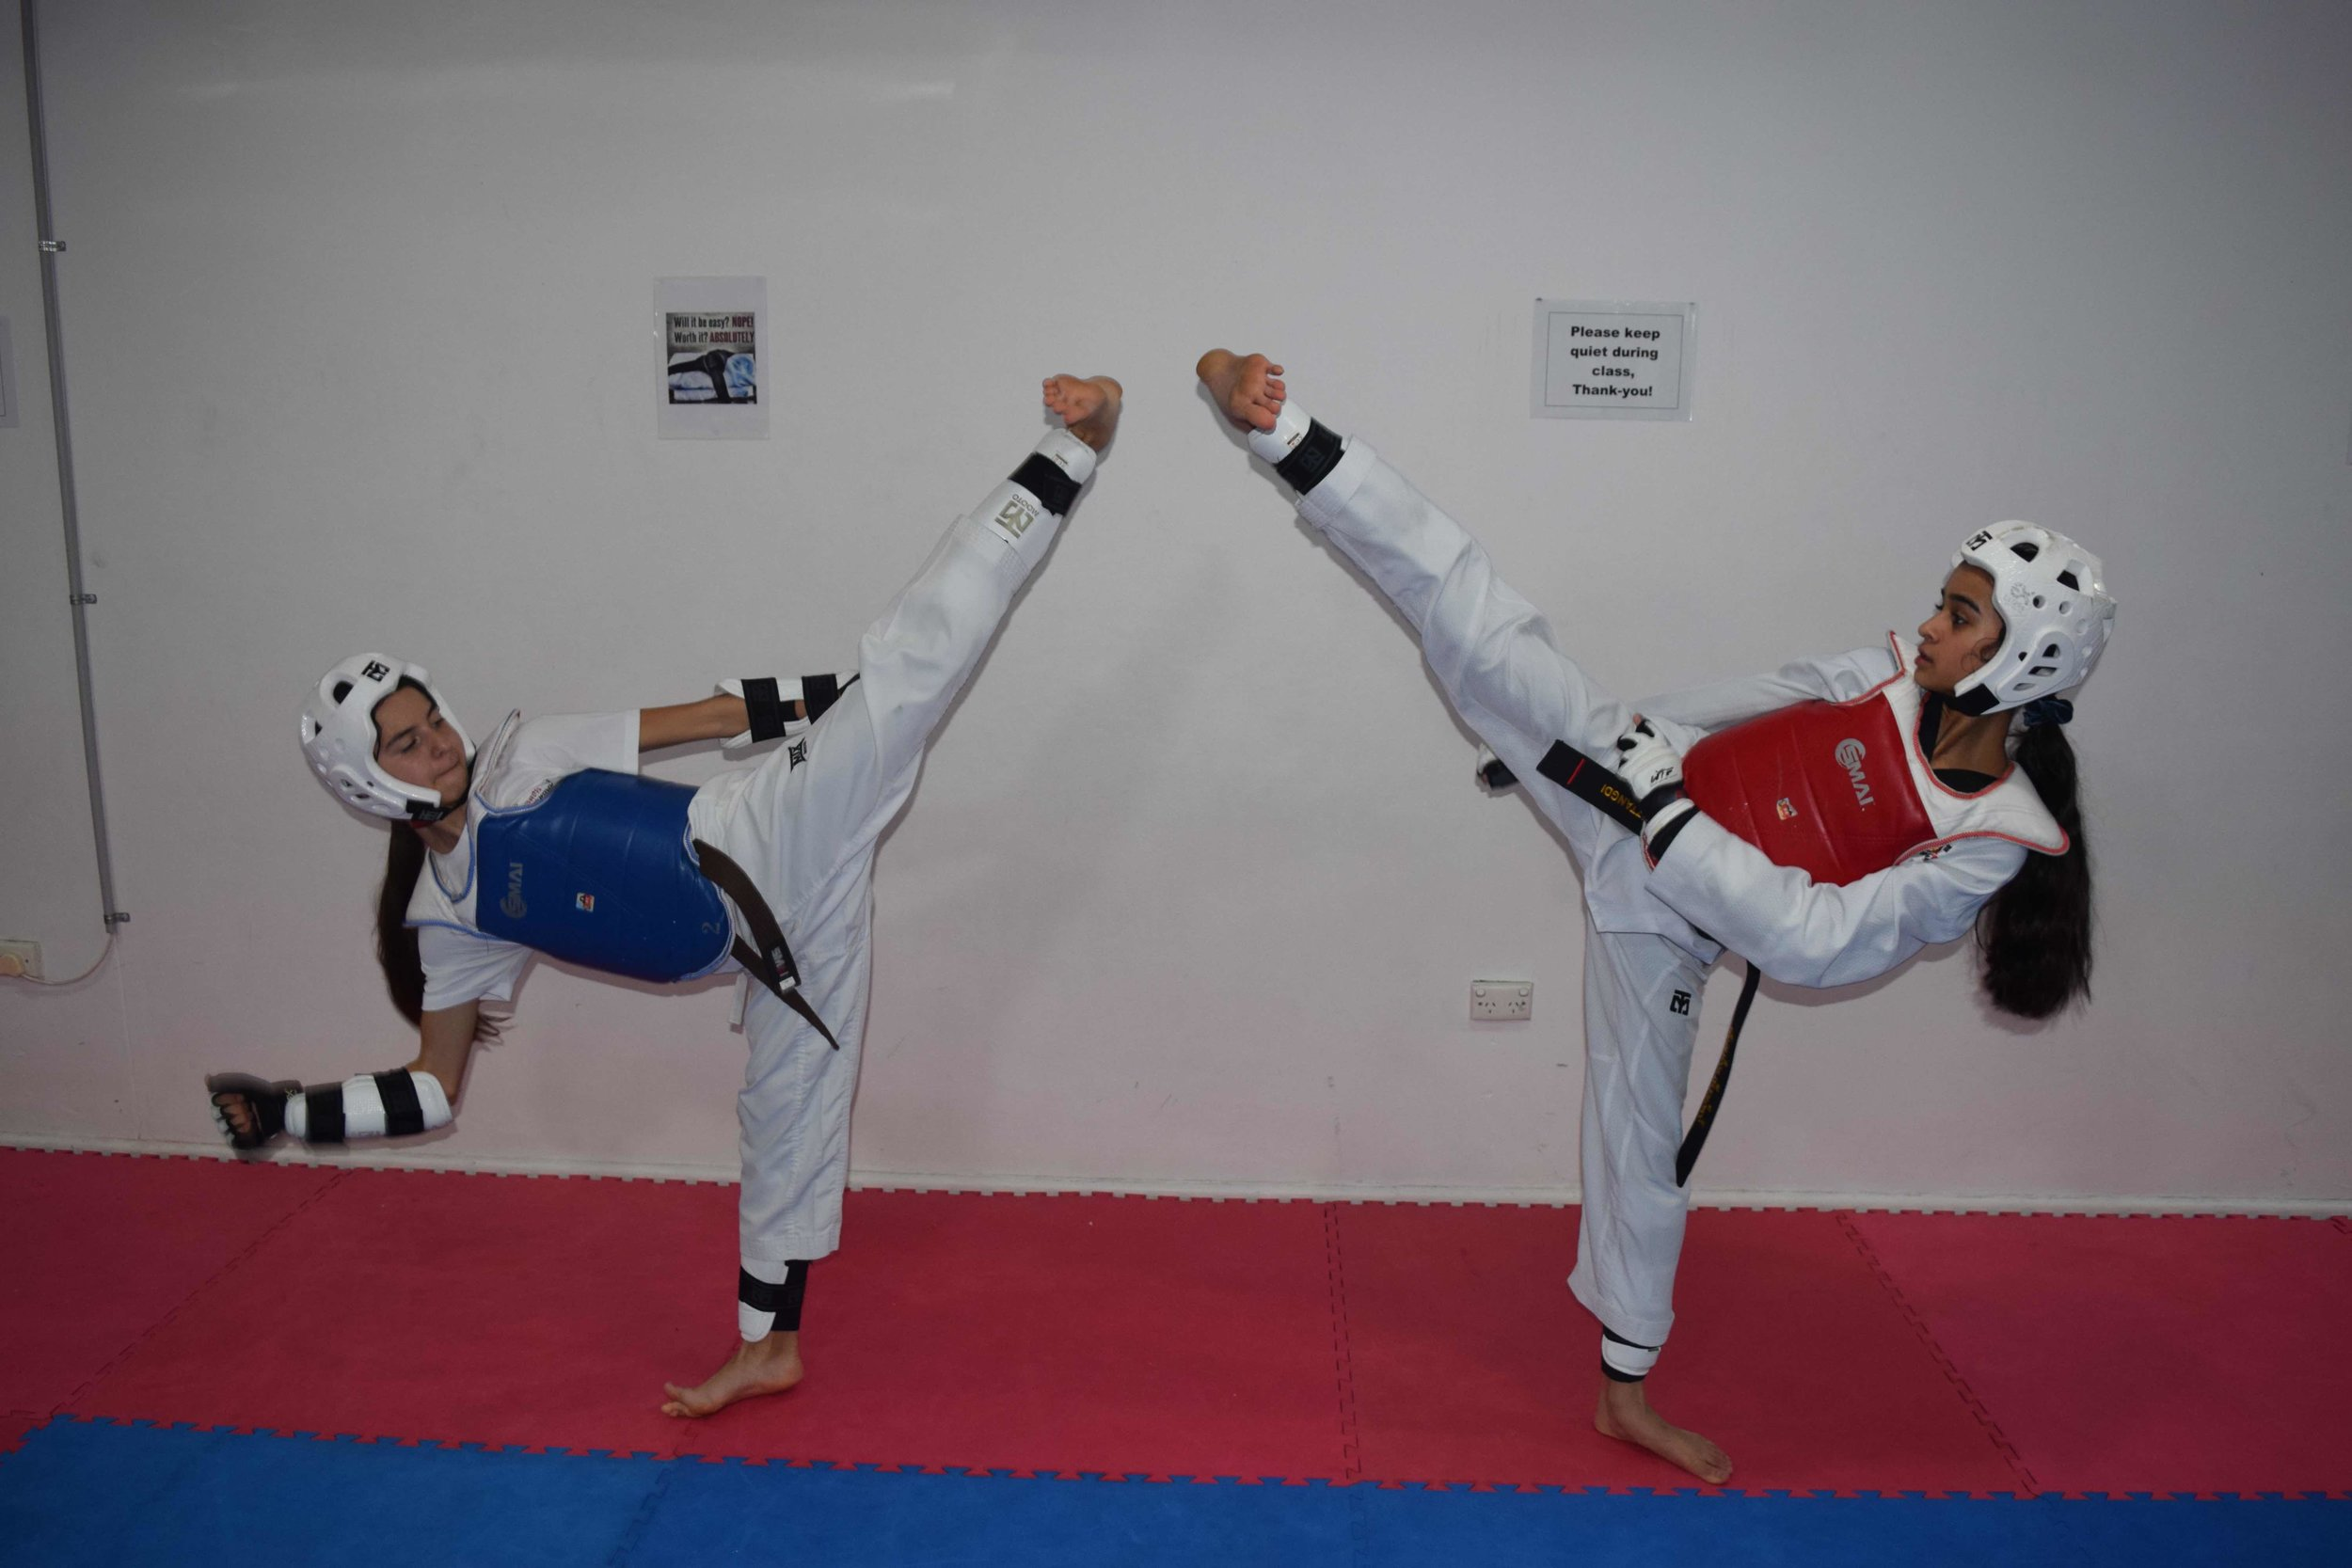 Facing Taekwondo Kicks with Sparring Gear 1.jpg